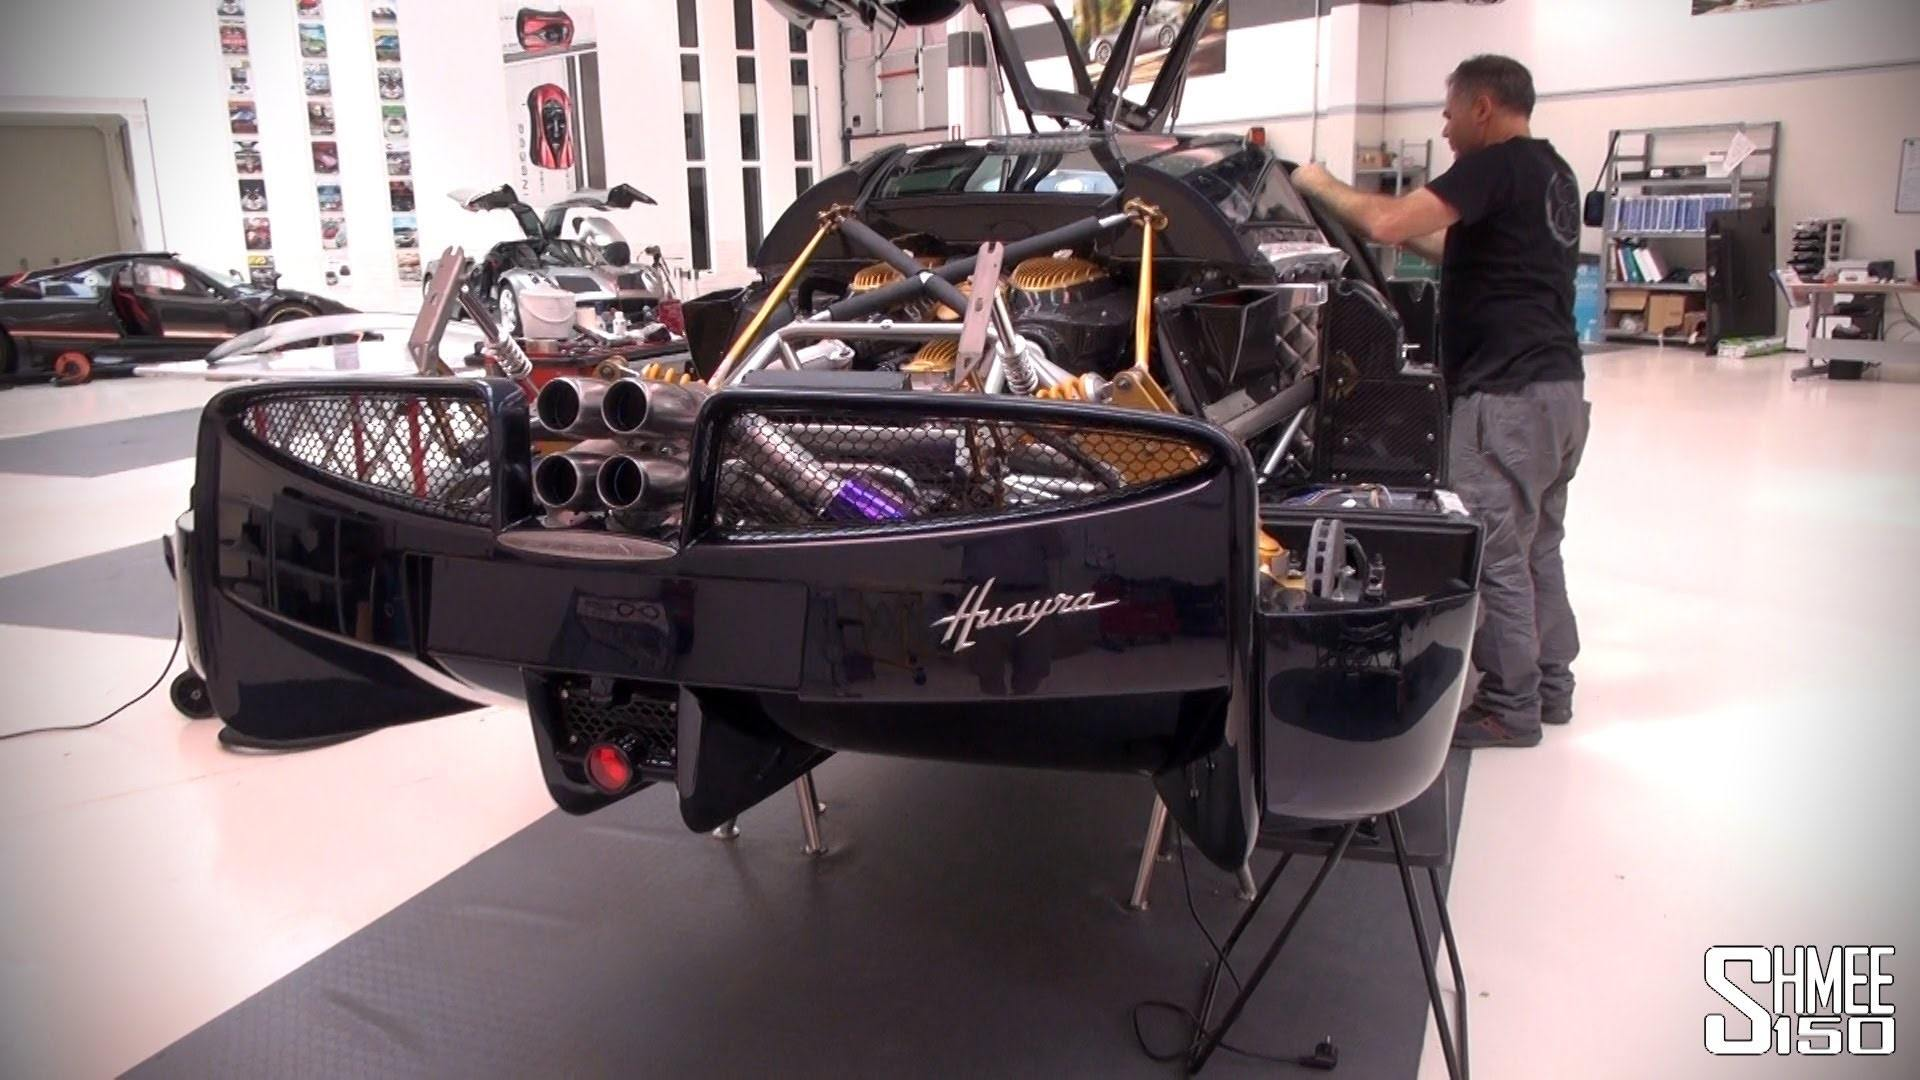 Pagani Automobili S.p.A.: Merging Art and Science – Technology and